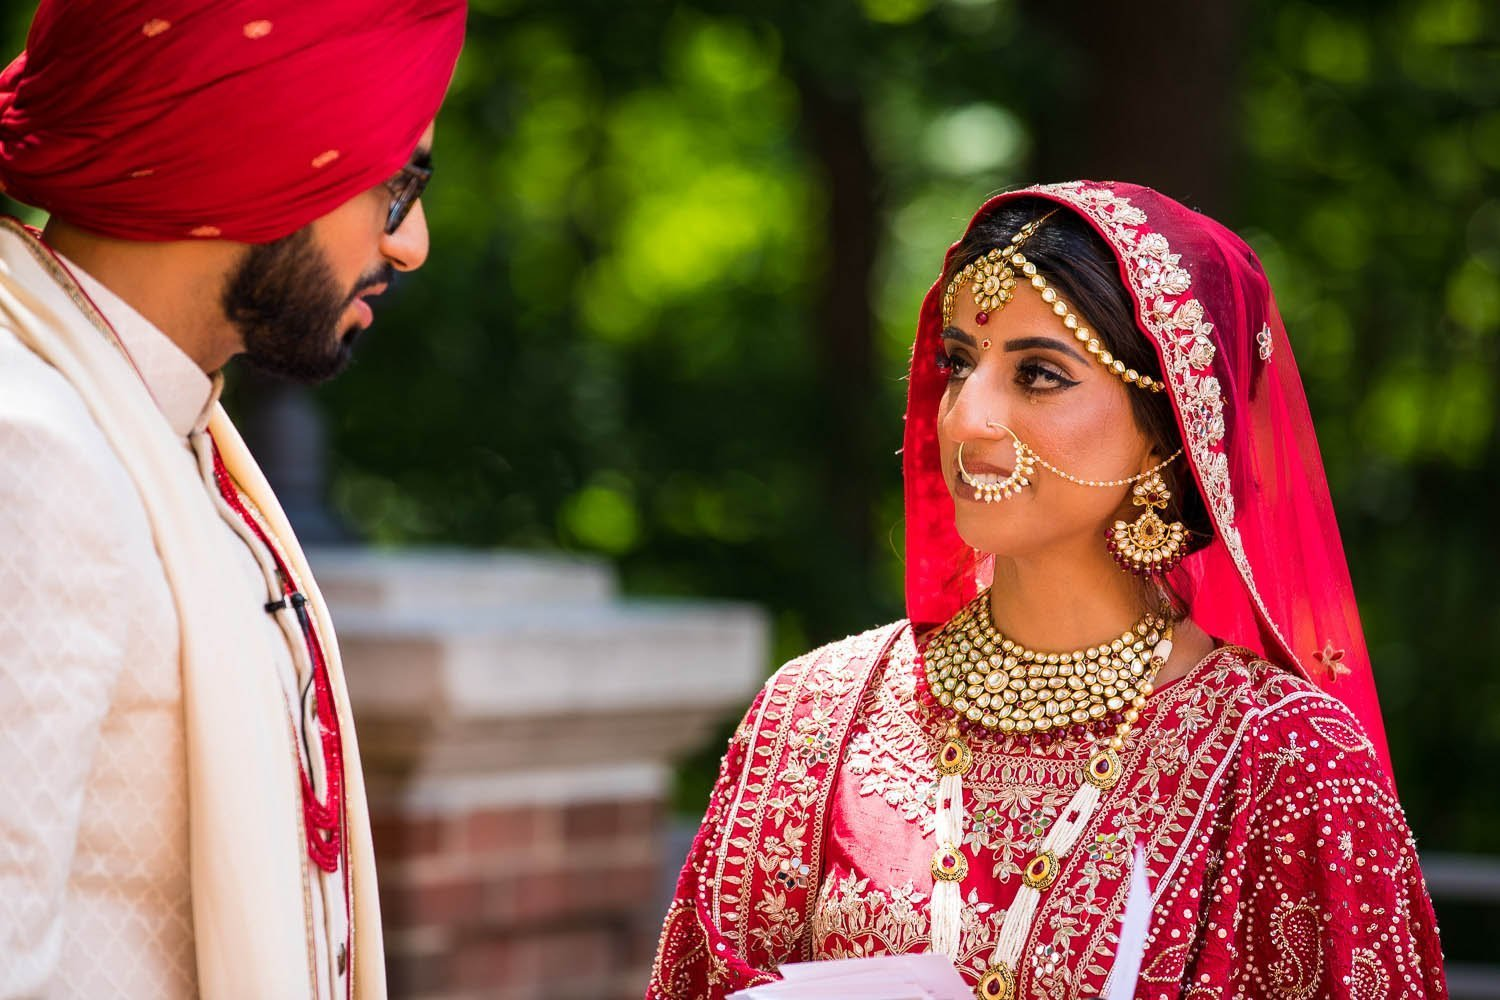 Bride & Groom First Look - Westfields Marriott Chantilly - Virginia Indian Wedding - Rahul Rana Photography